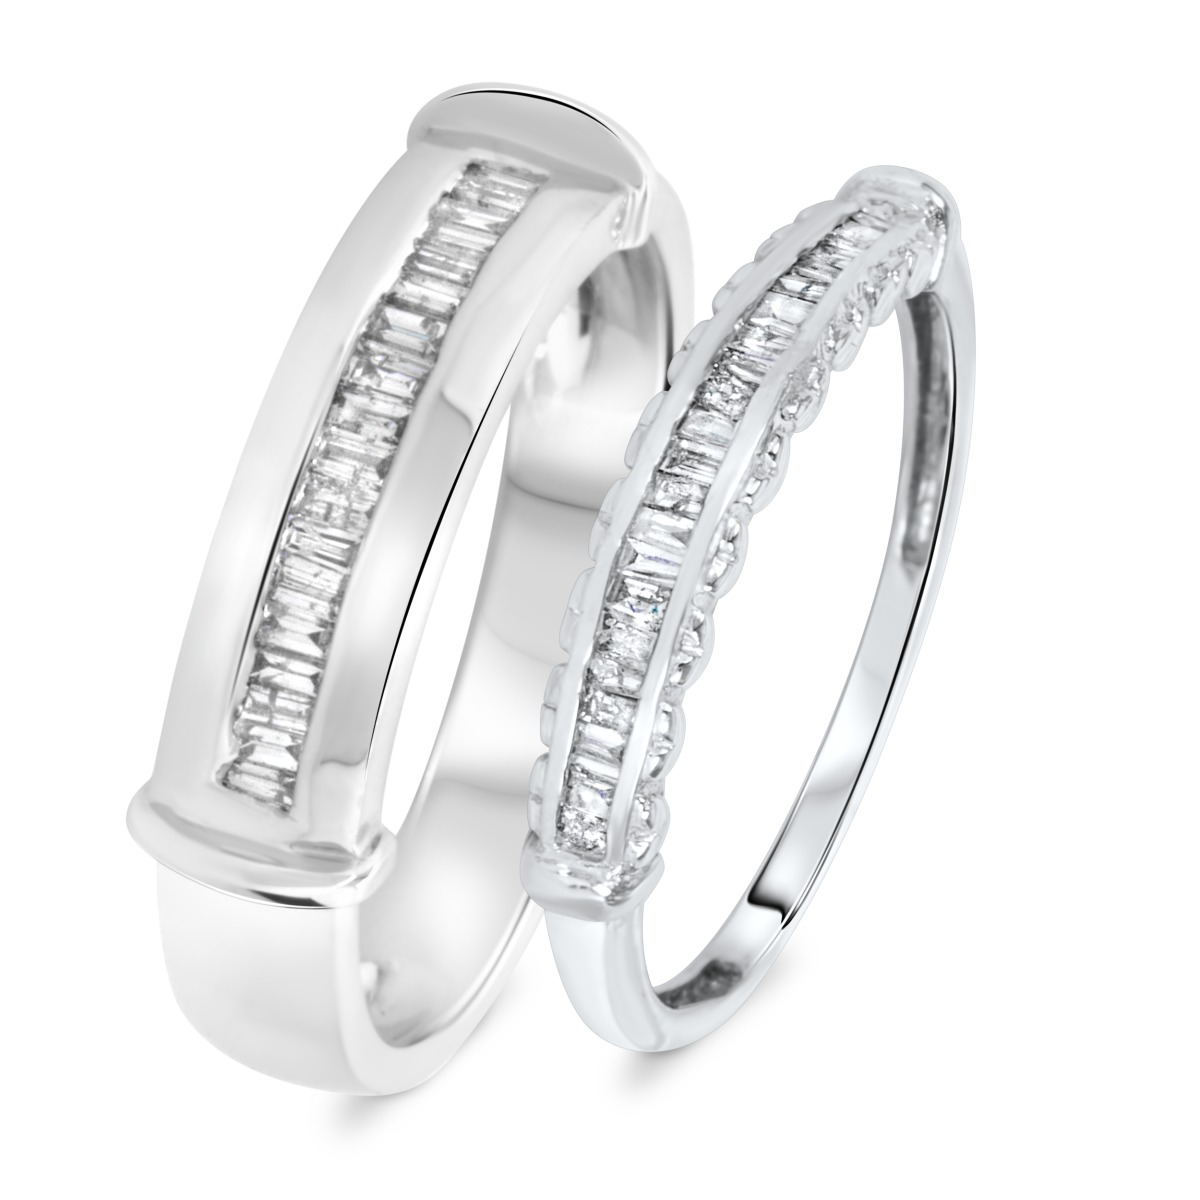 1/2 Carat T.W. Diamond Matching Wedding Rings Set 10K White Gold